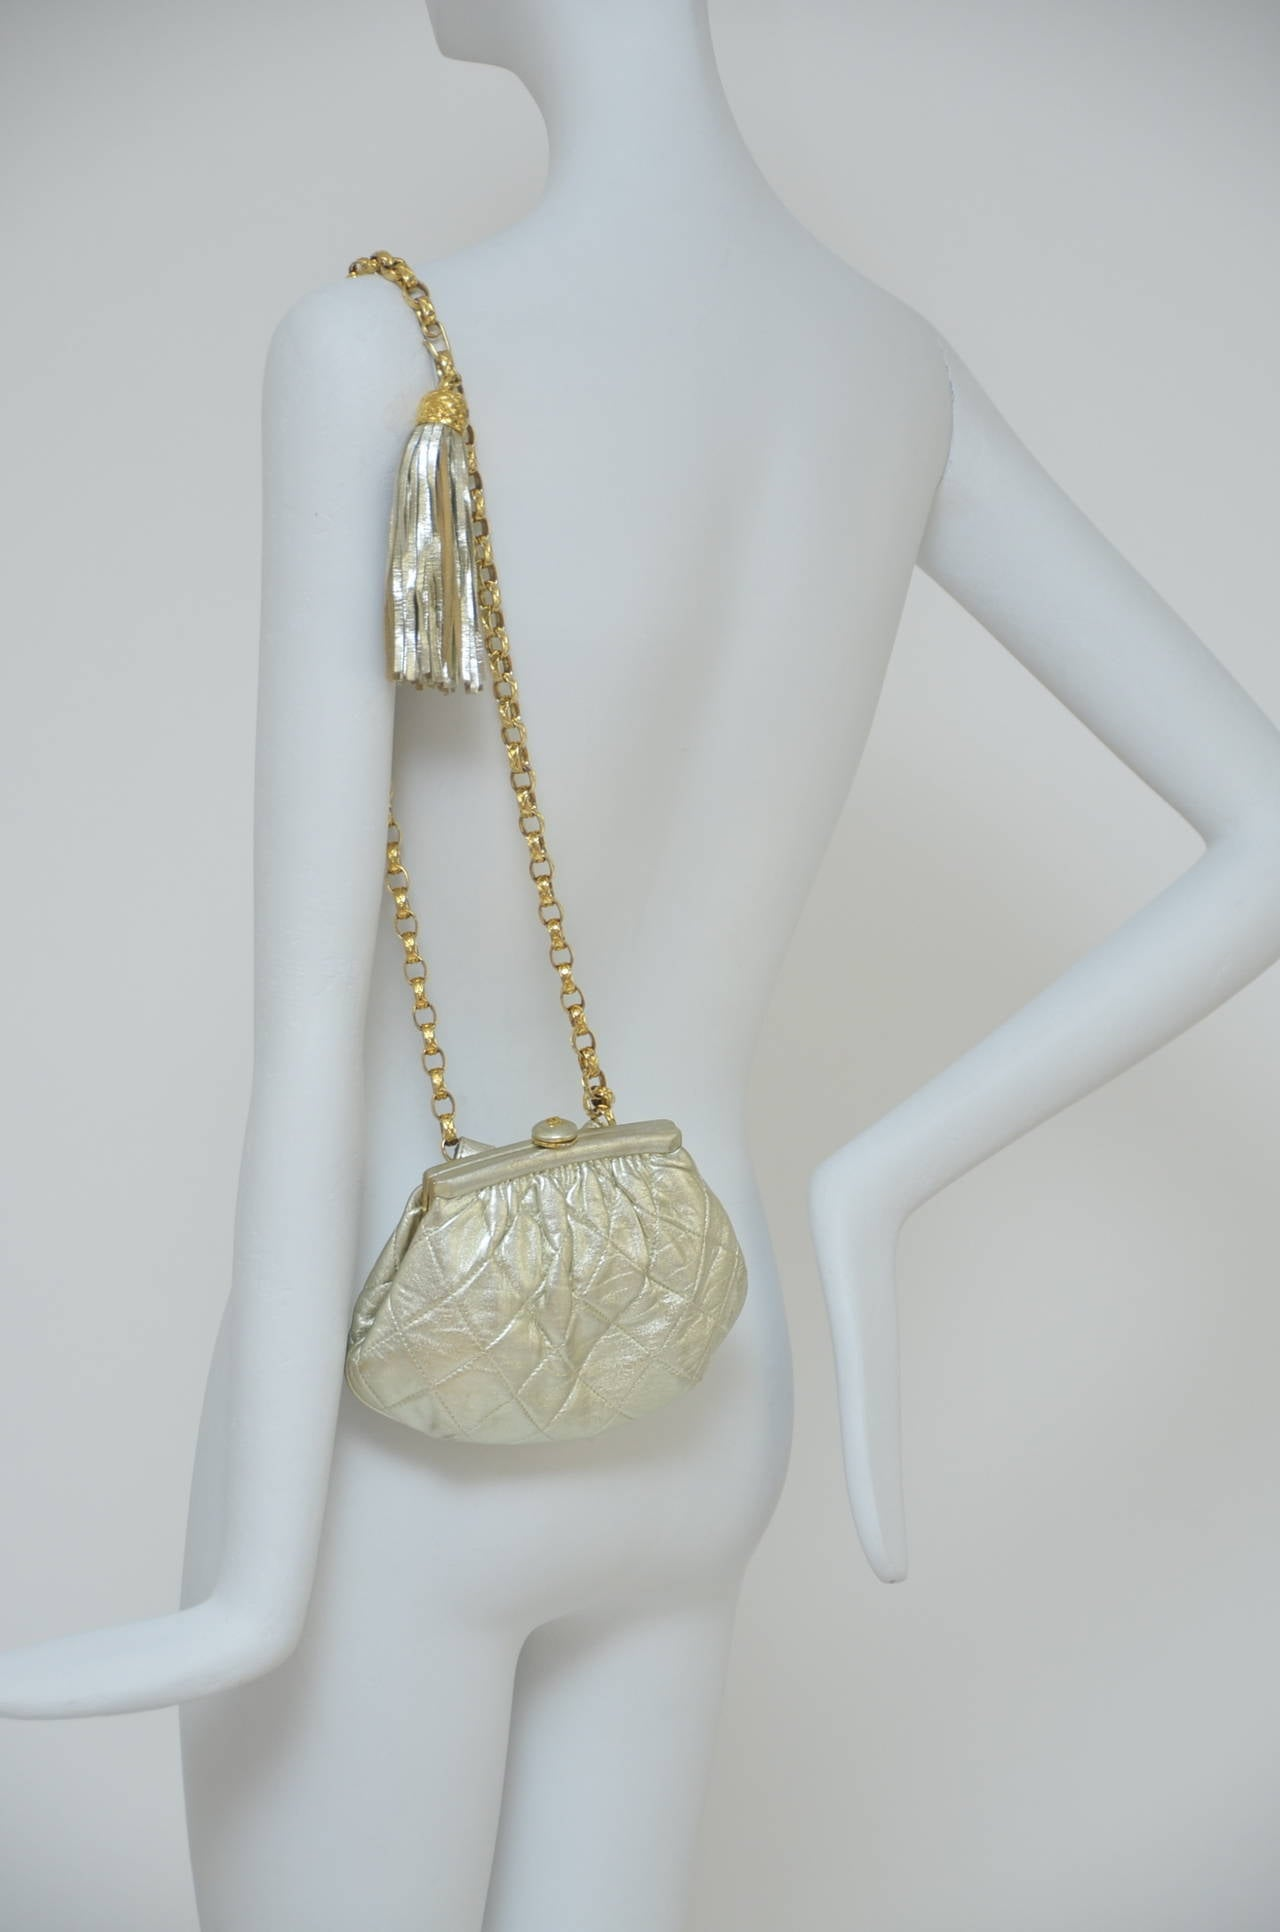 Chanel Vintage Waist Evening  Bag Clutch With Tassel For Sale 1